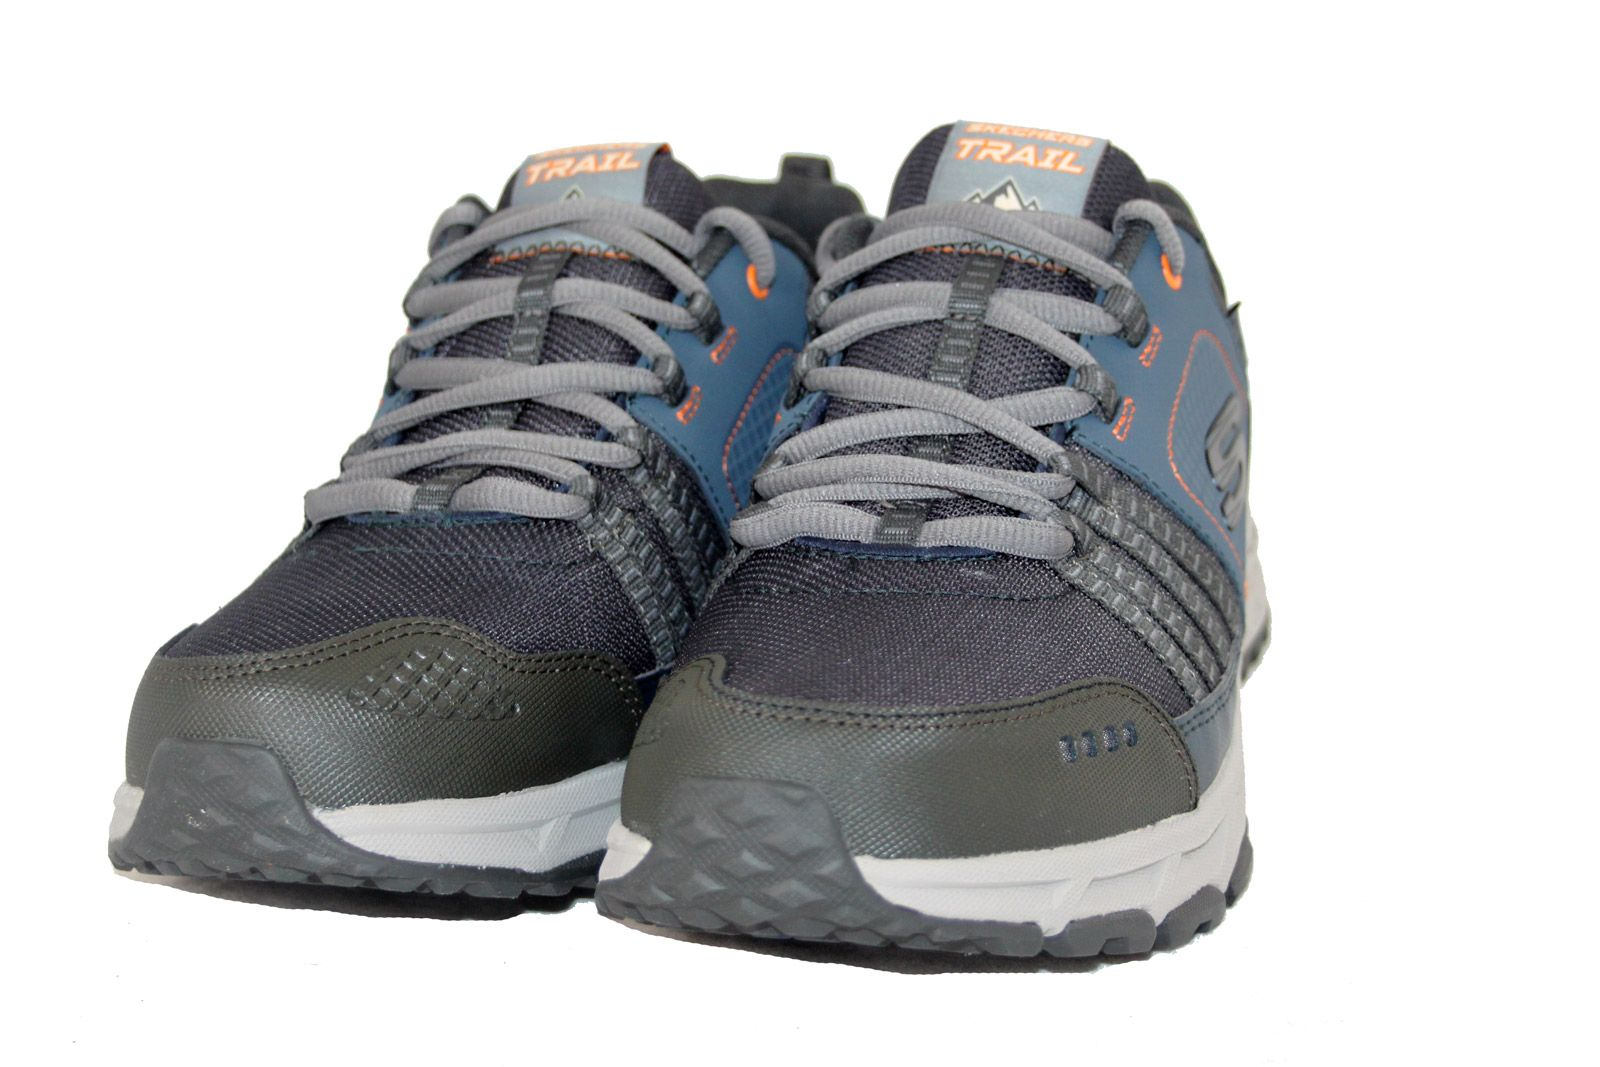 flauta Condición Alentar  Skechers 51591 Escape Plan Men's Trainer Navy | Skechers - Mens ...